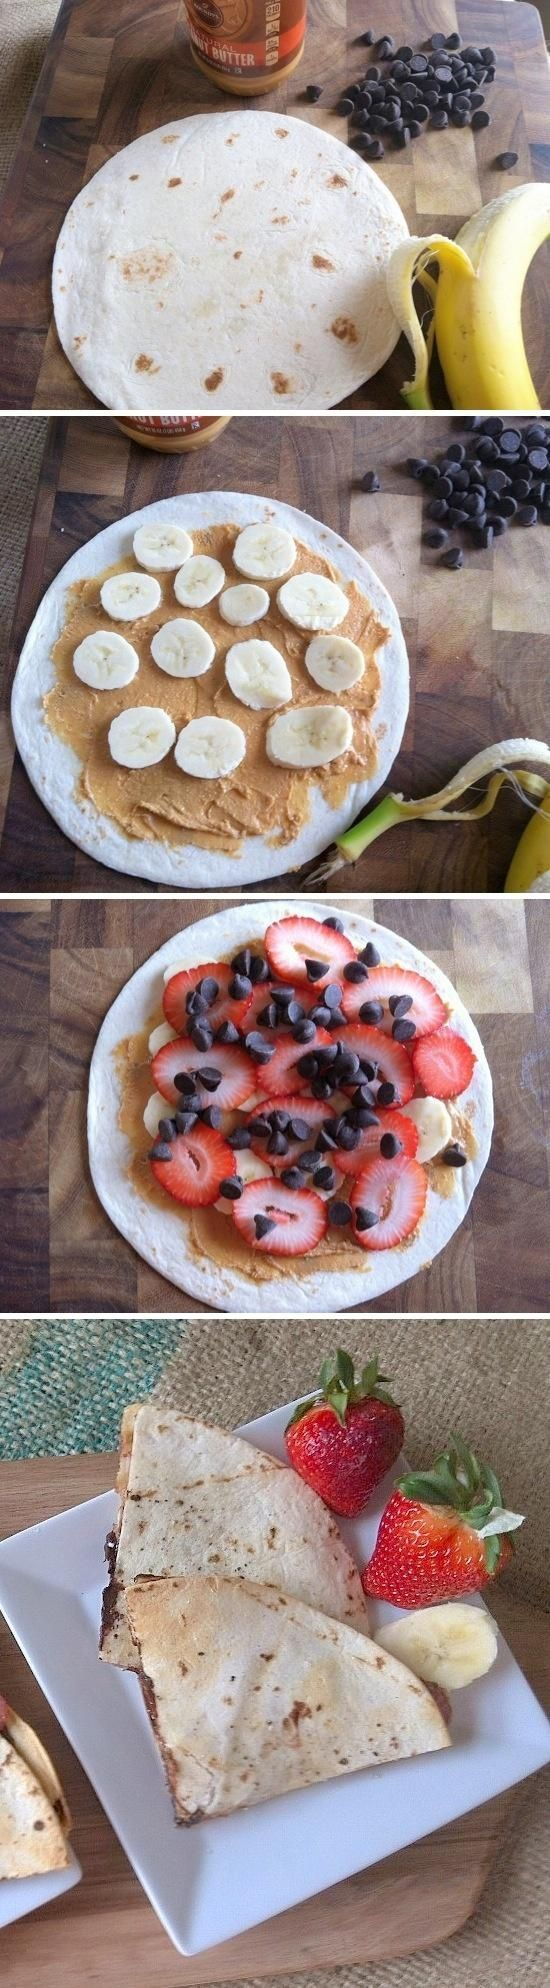 Boys would love this: nutella would be a yummy option too :) joysama images: Breakfast Quesadillas.